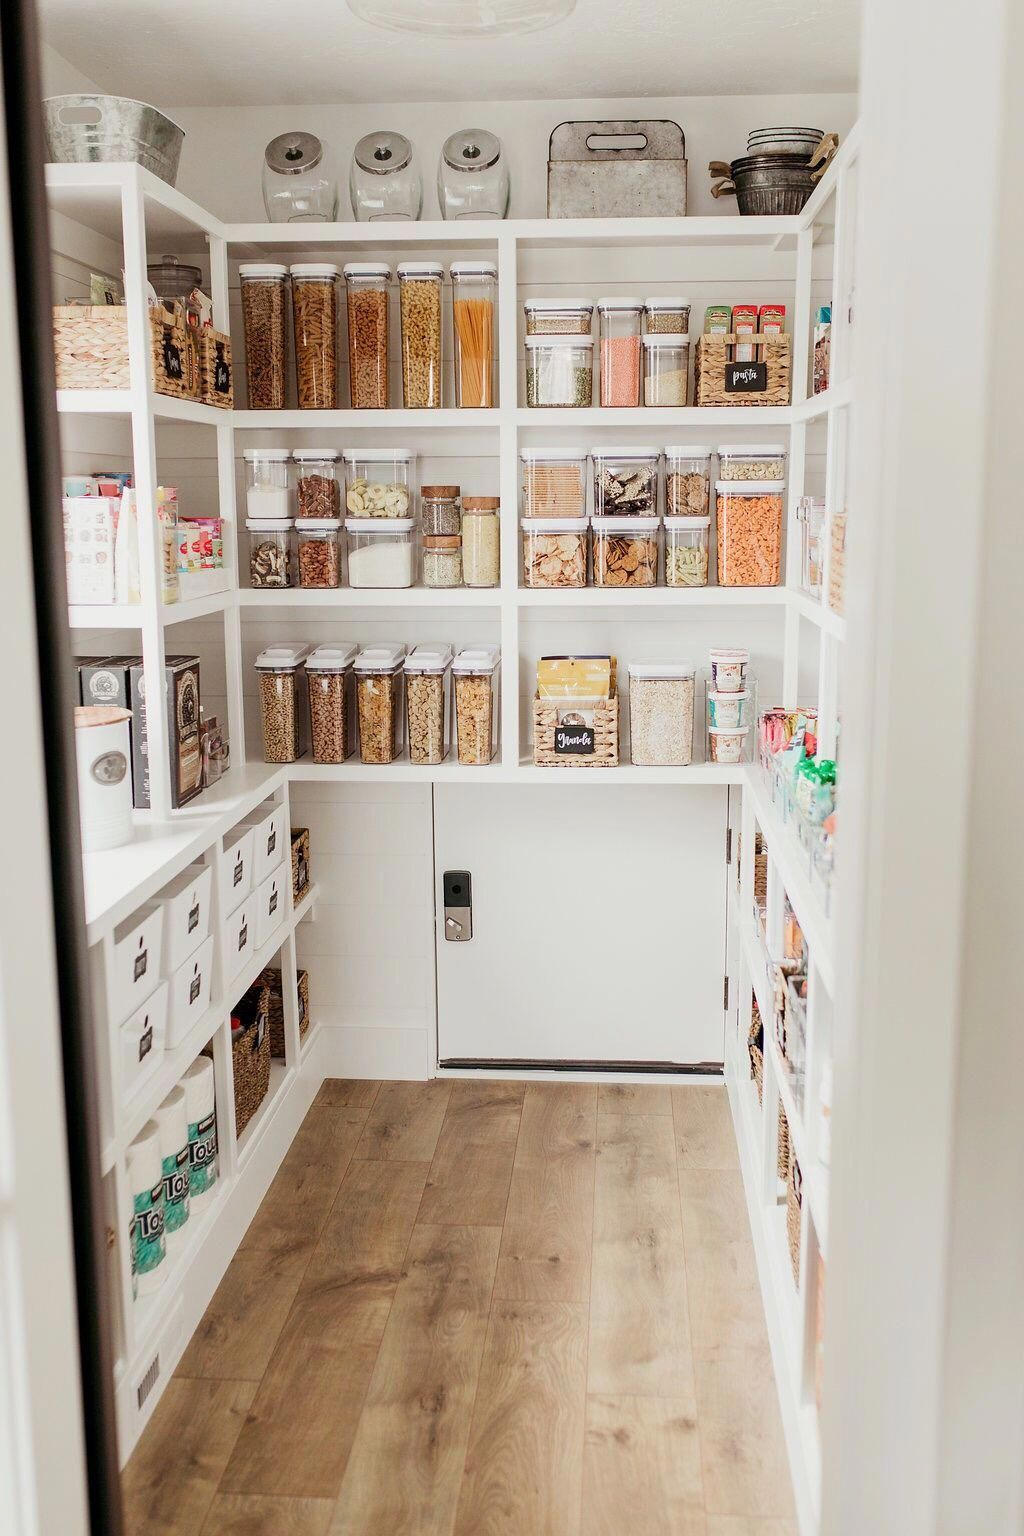 Custom Made Cabinet Options Let Us Modify Your Kitchen Cabinets To Create A Space That Expresses Your Design Pantry Design Kitchen Pantry Design Pantry Room